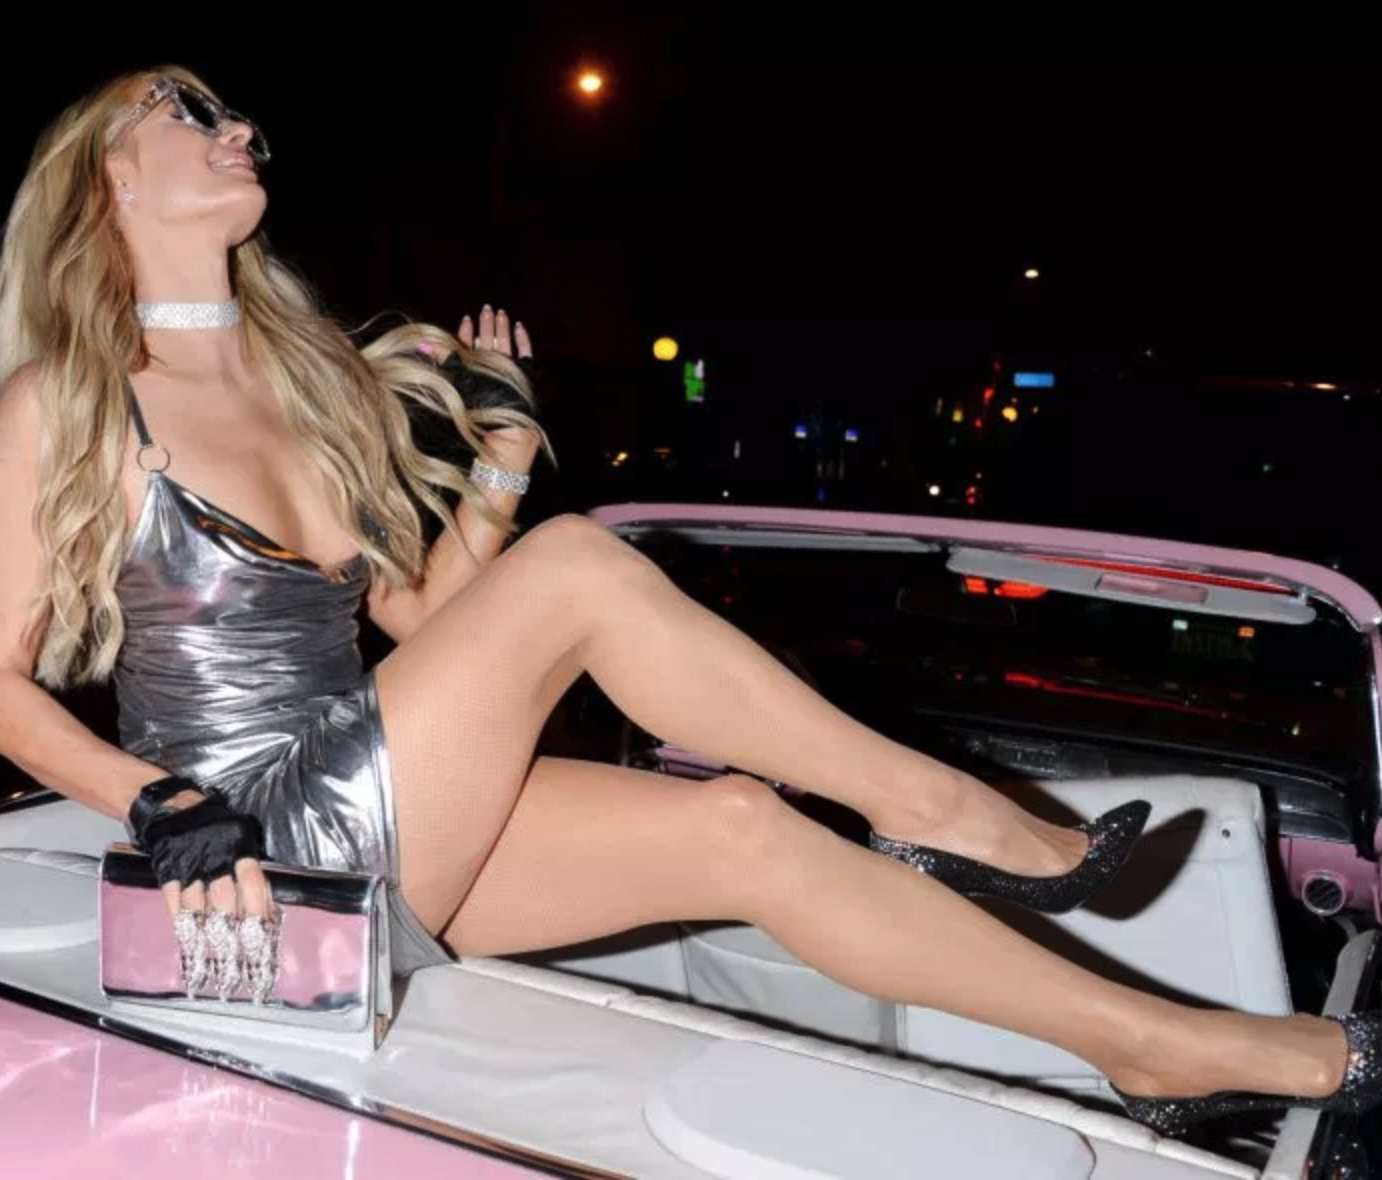 Paris Hilton Has Legs for Days in Her Short Silver Dress